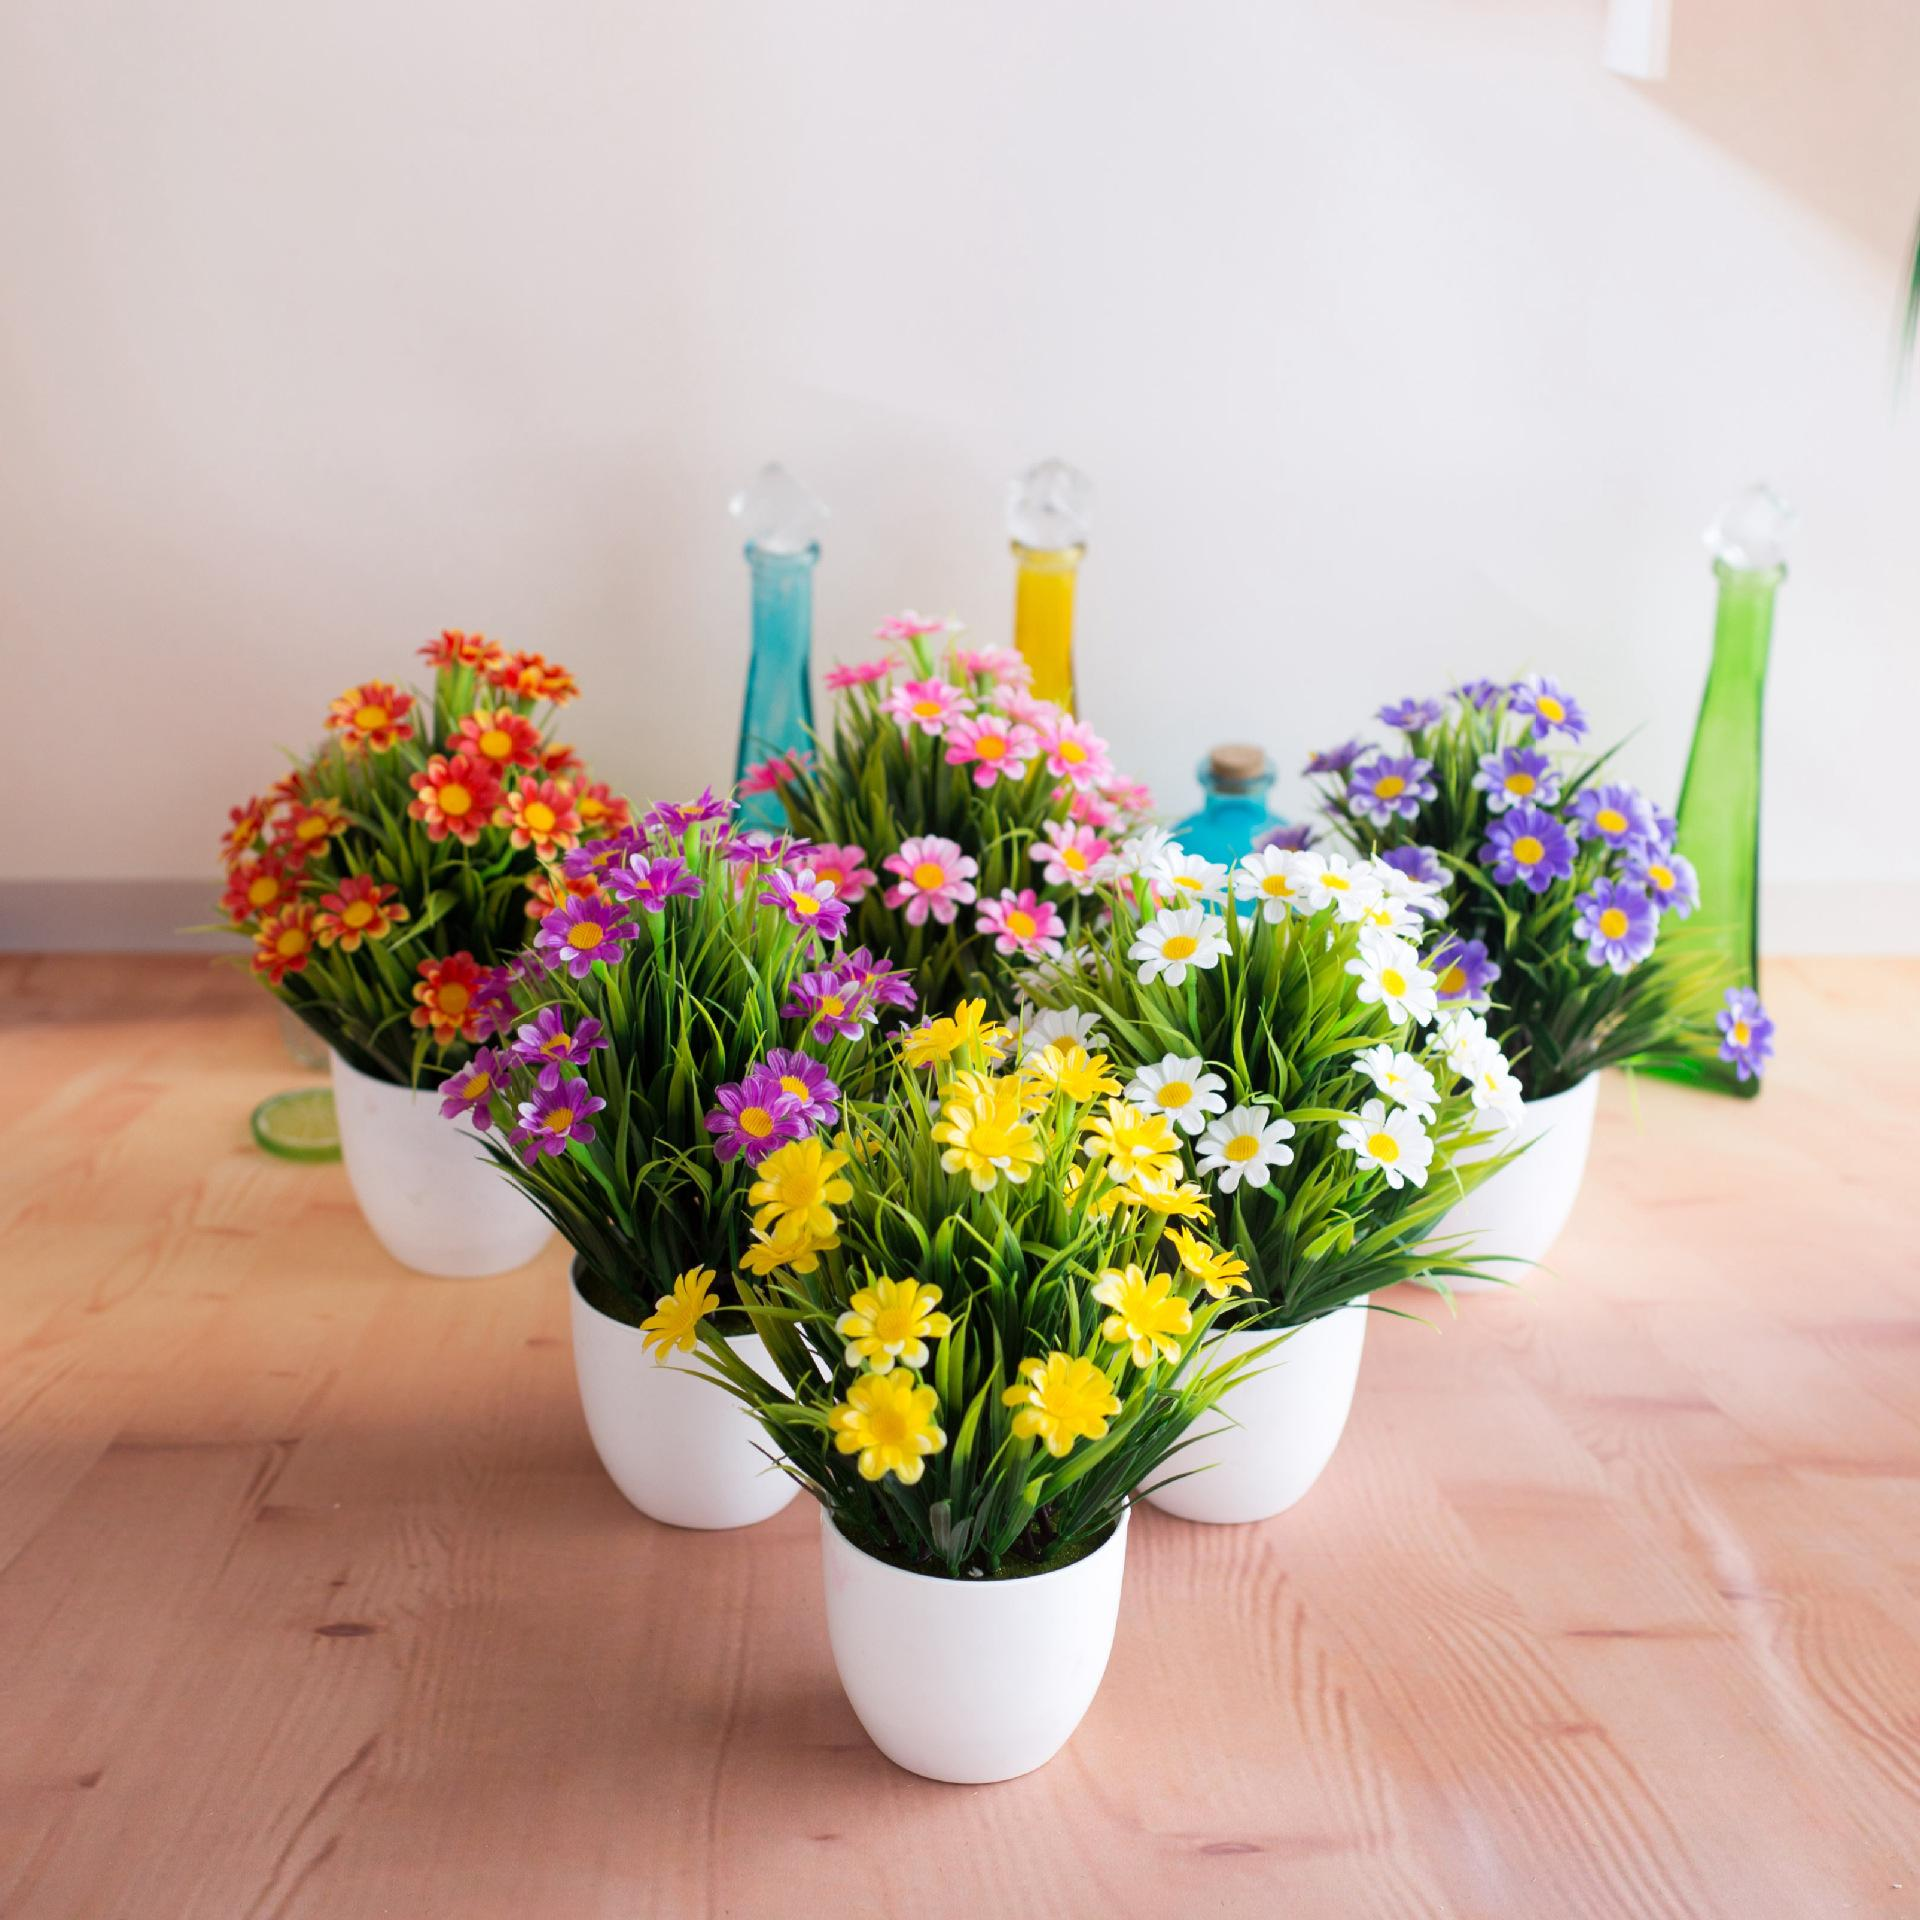 2019 Fake Flower Pot Set New Hot Spring Grass Chrysanthemum Simulation Potted Flower Suit Home Green Plant Decoration Furnishings From Shopifyworld ... & 2019 Fake Flower Pot Set New Hot Spring Grass Chrysanthemum ...